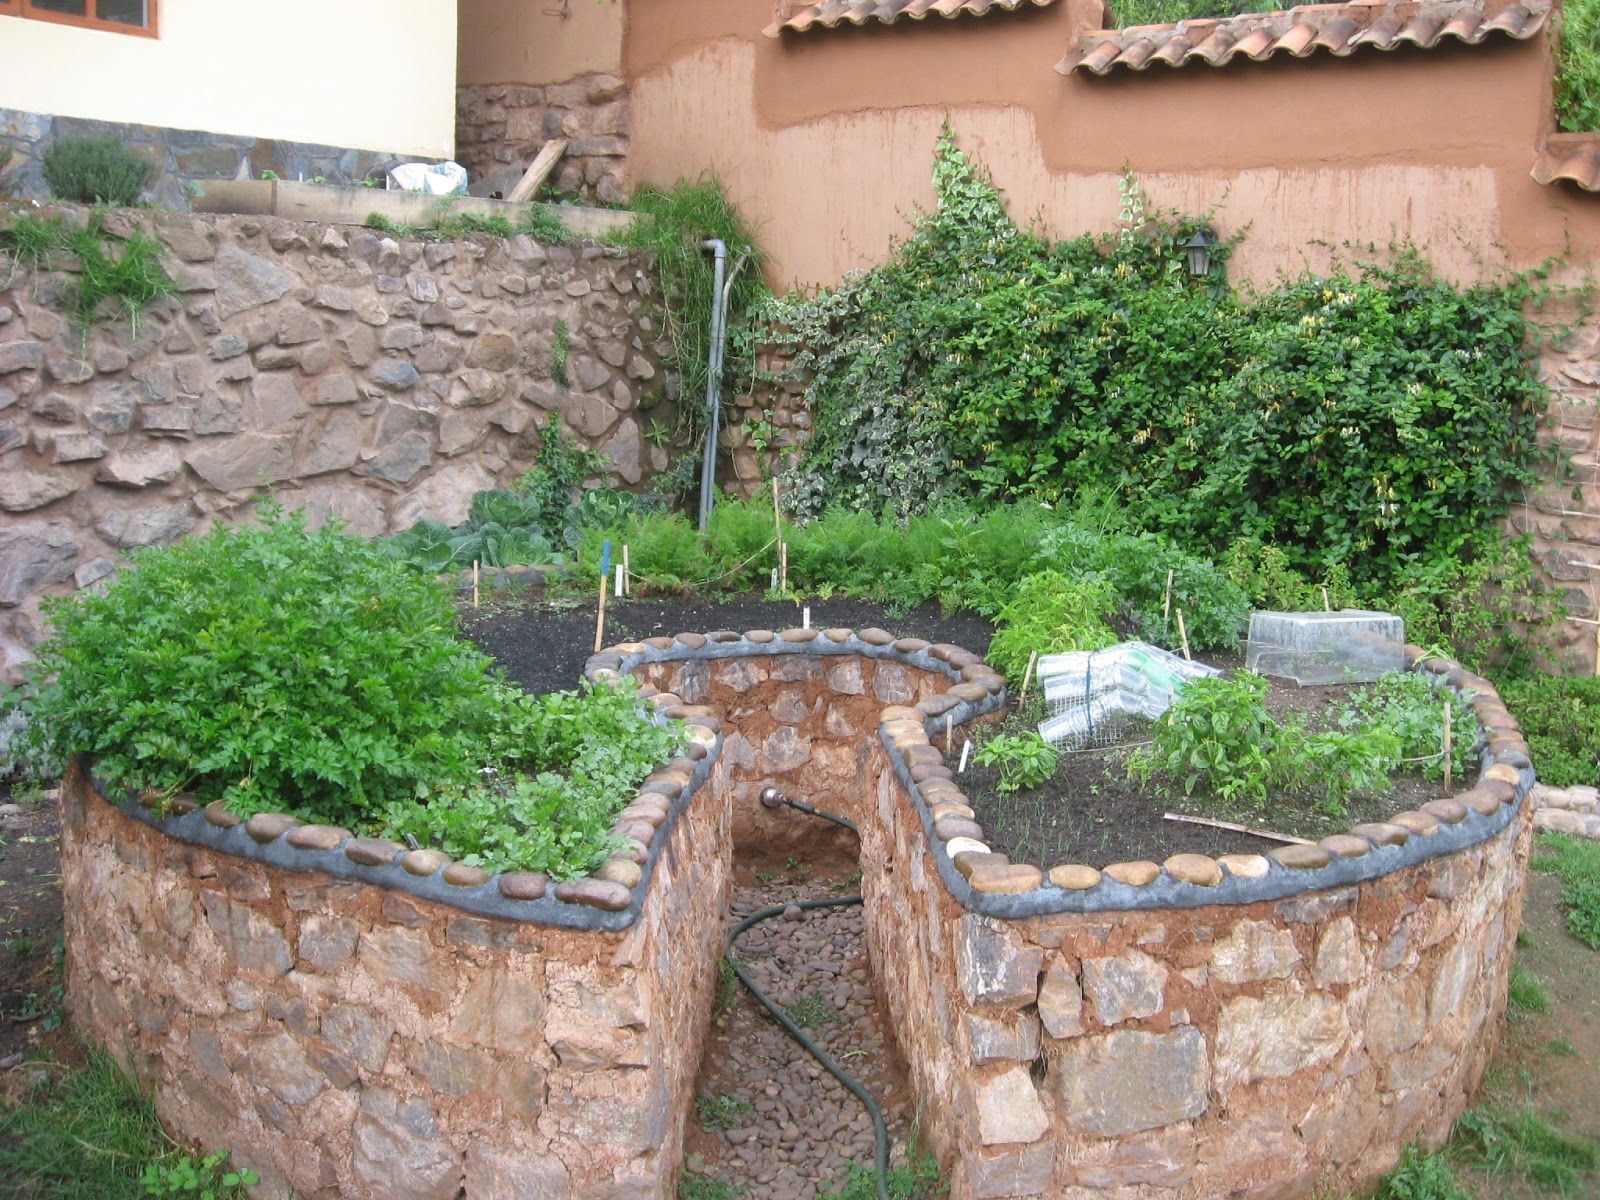 permaculture farming | Keyhole' raised-bed gardens are great ... on simple house garden design, horticultural therapy garden design, sustainable garden design, modern garden design, water garden design, xeriscape garden design, veggie garden design, bioretention garden design, vegetable garden design, forest garden design, livestock garden design, cutting flowers garden design, home garden design, keyhole garden design, companion planting garden design, high tunnel garden design, landscape design, herb garden design, swale garden design, bioshelter design,